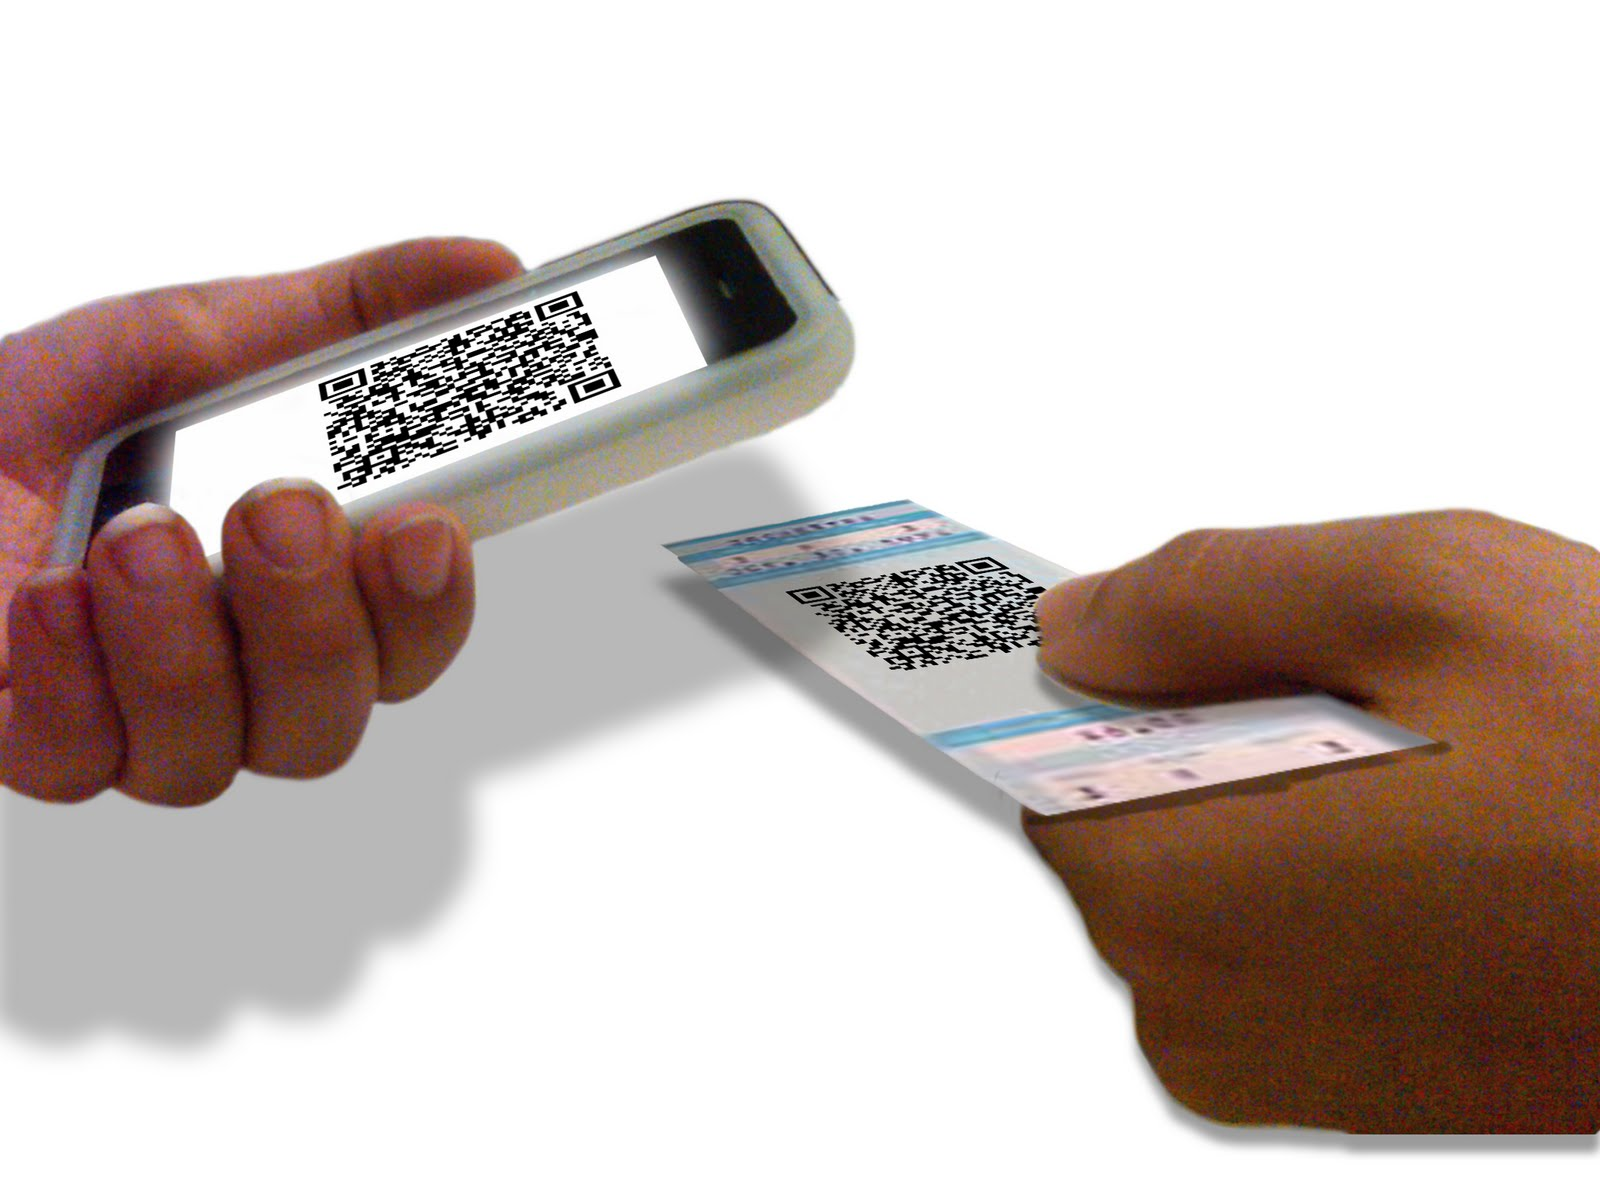 how to scan with a smartphone